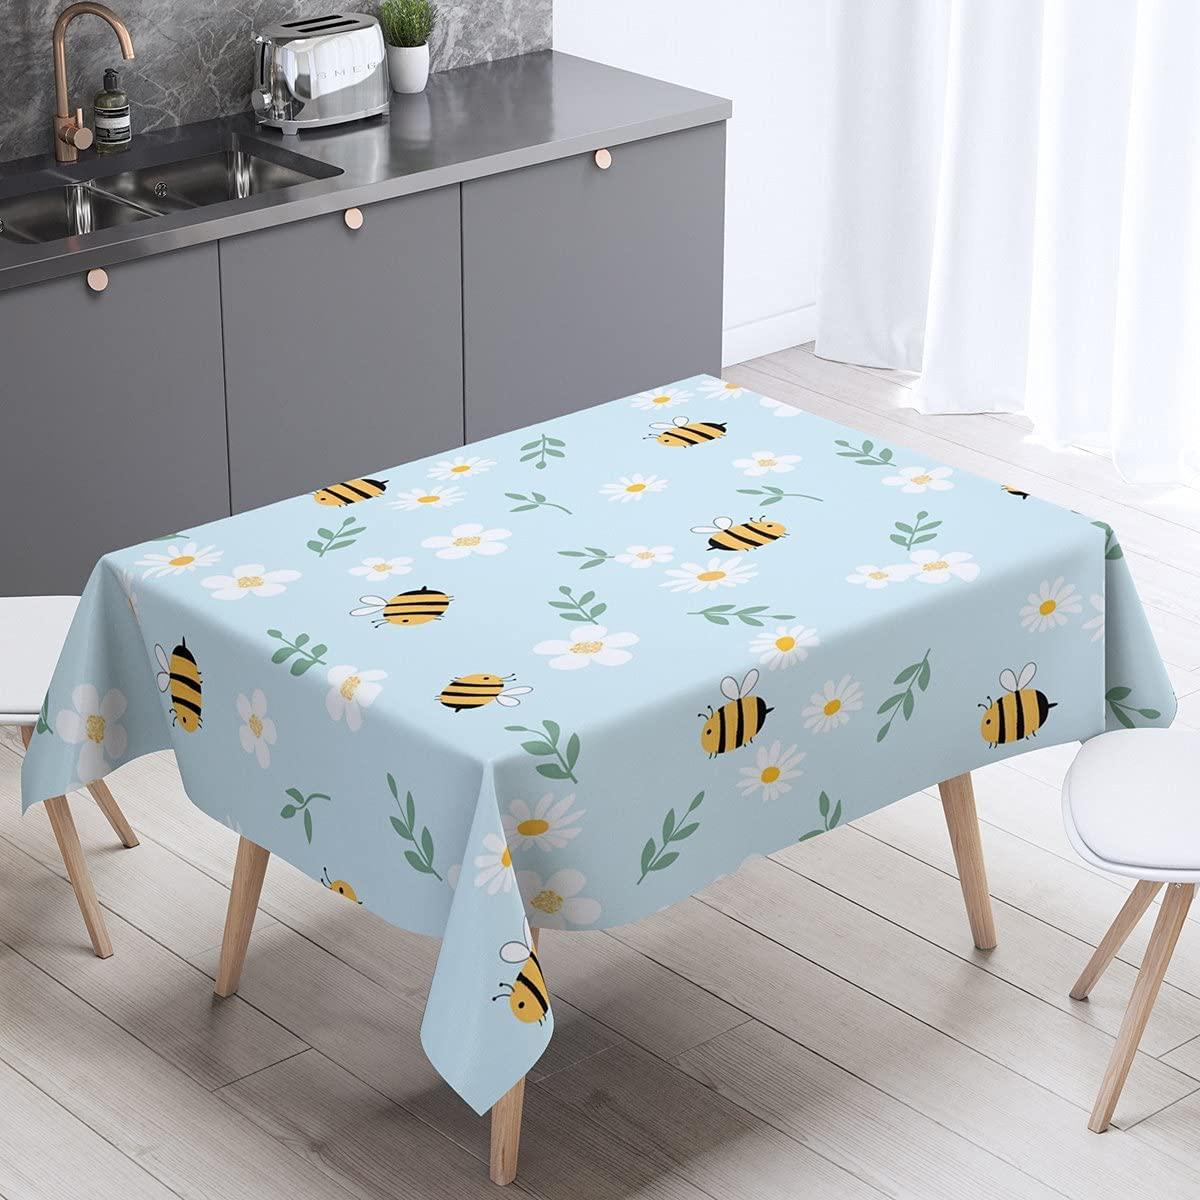 Erosebridal Honey Bee Table Clothes White Floral Tablecloths Cartoon Farmhouse Animals Table Cover for Kids Boys Girls Flower Field Garden Theme Pastoral Tabletop Collection Child Room Decor 55